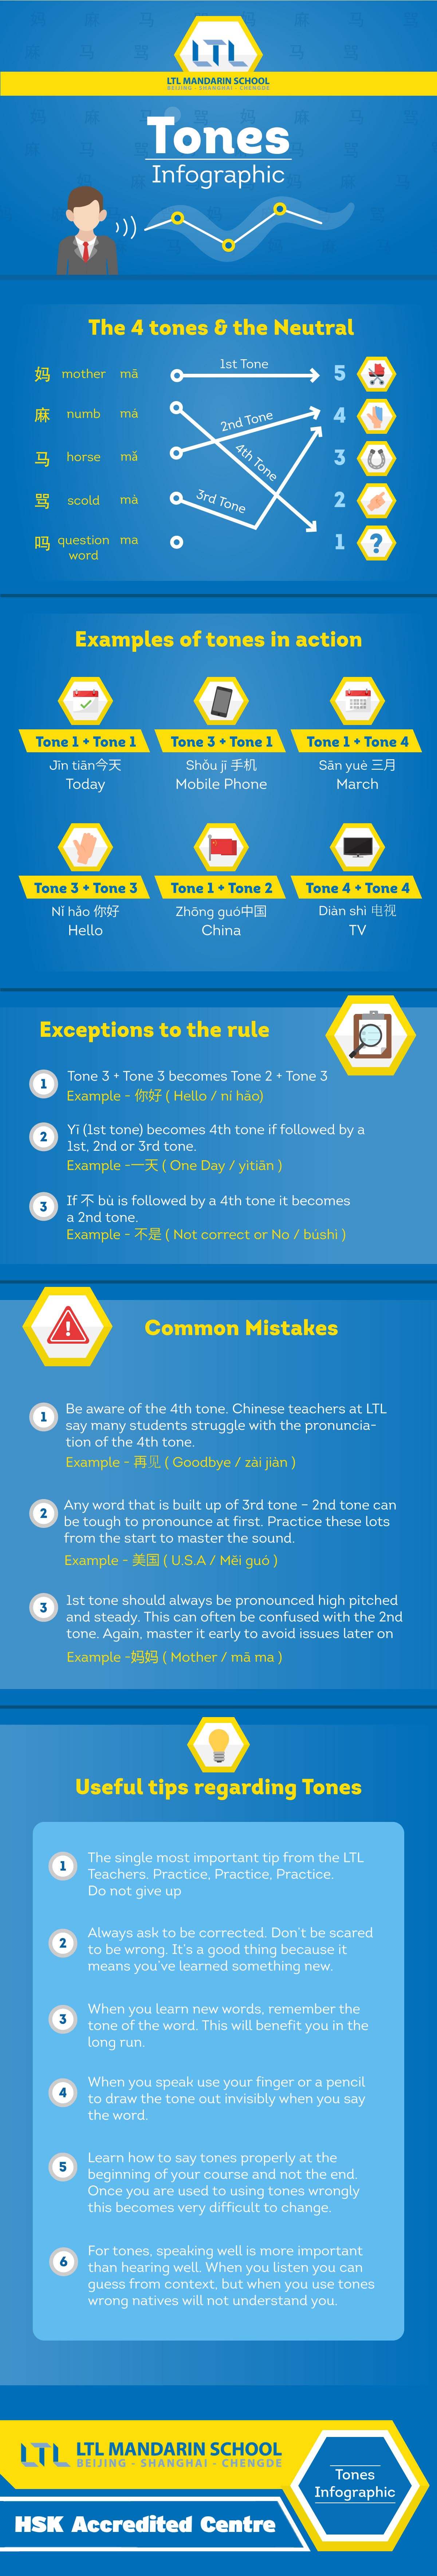 How to learn chinese ltl mandarin school the best way to memorize characters which apps and websites to use and how to keep motivated while learning chinese everyone has their own methods to fandeluxe Image collections